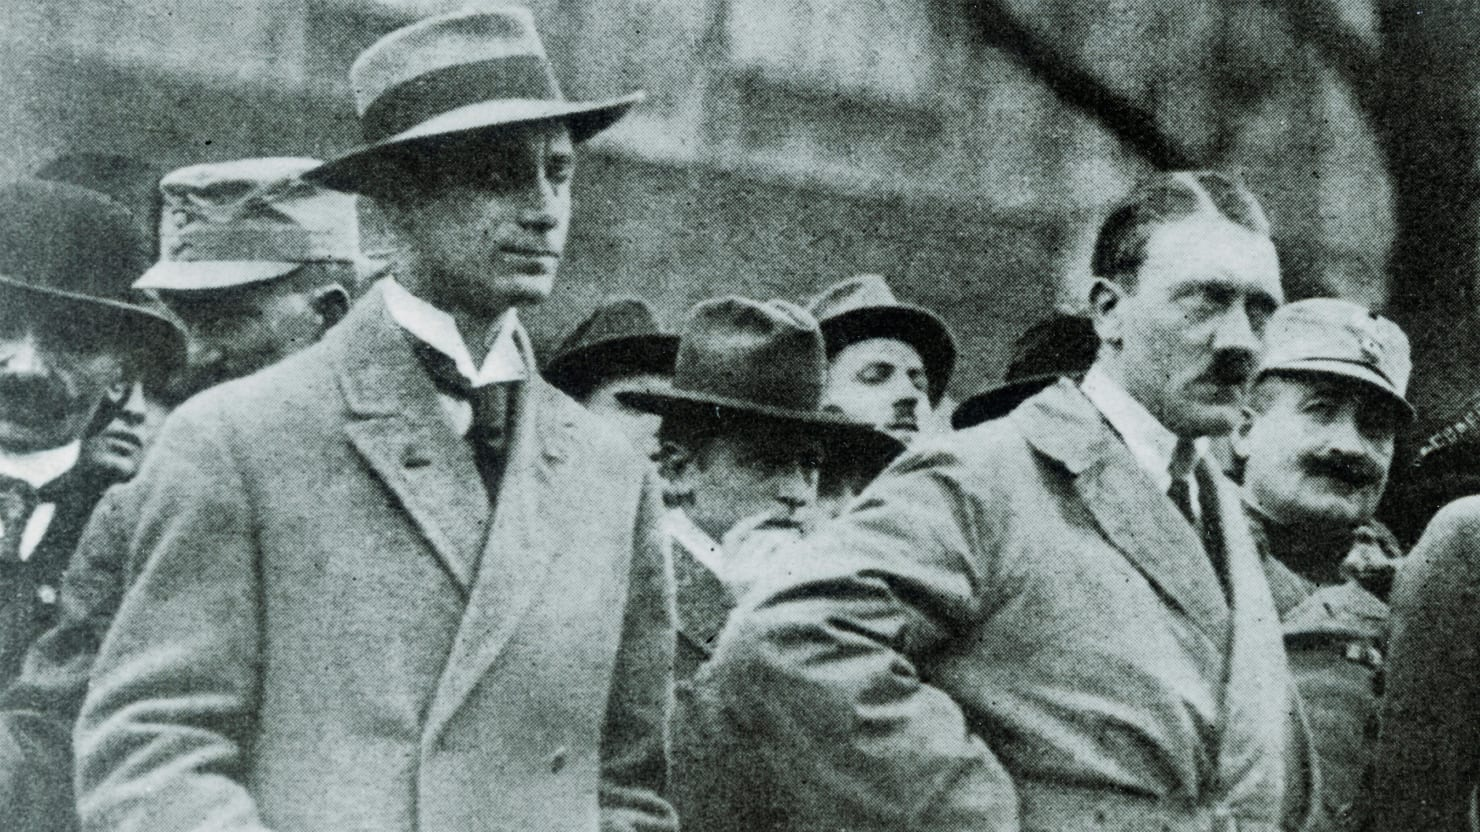 The Man Who Turned Hitler Into Hitler